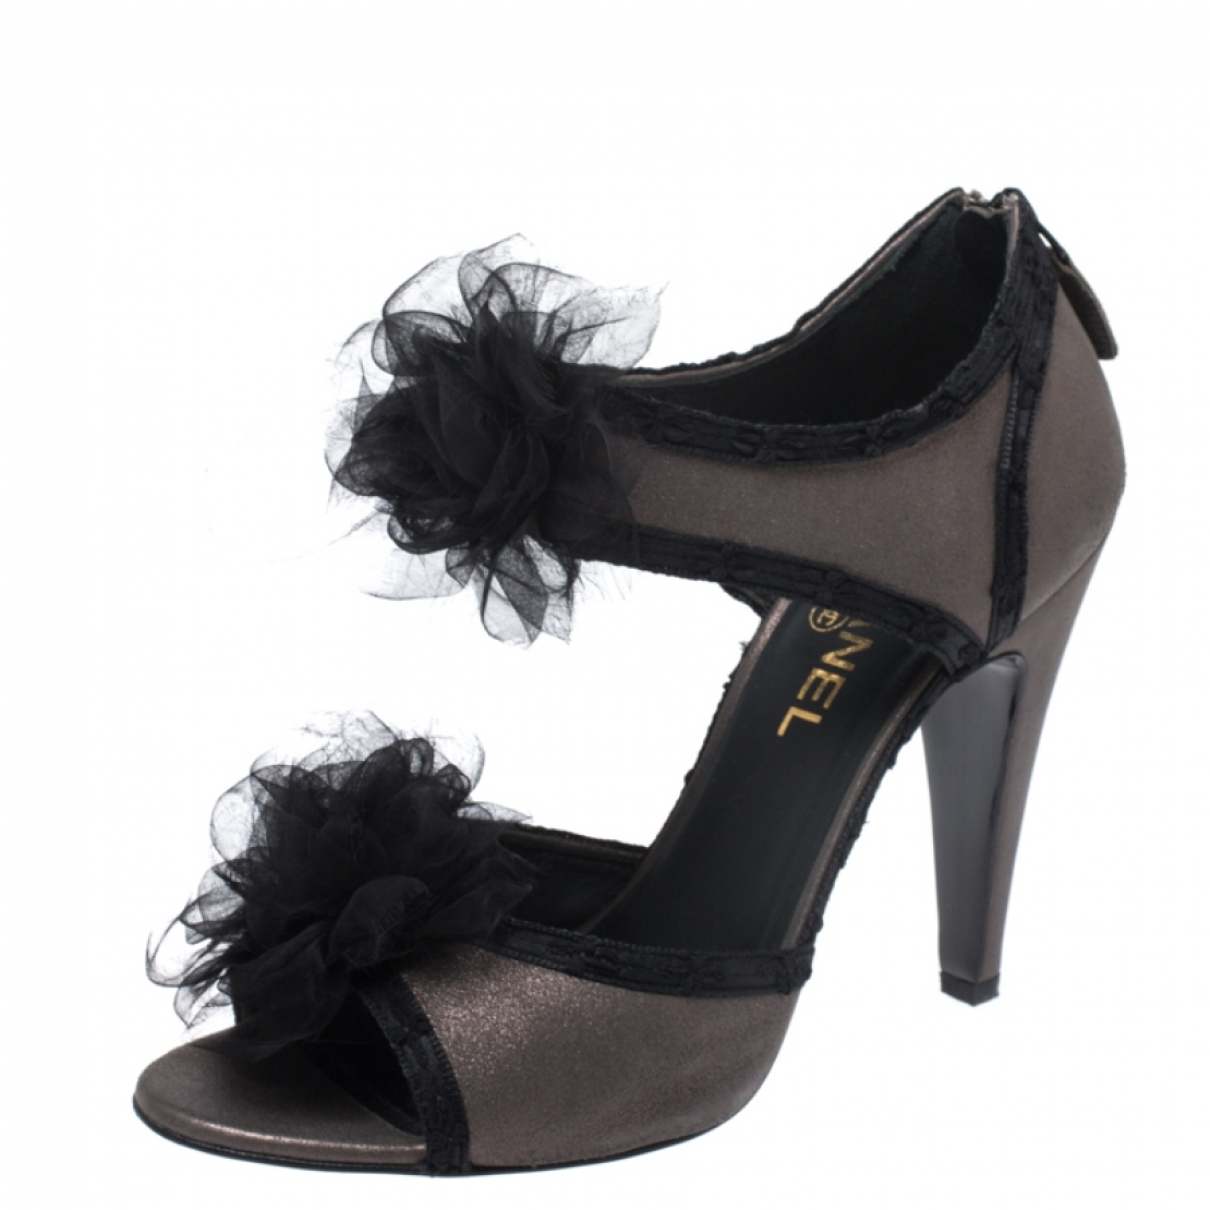 Chanel \N Black Leather Sandals for Women 8 US